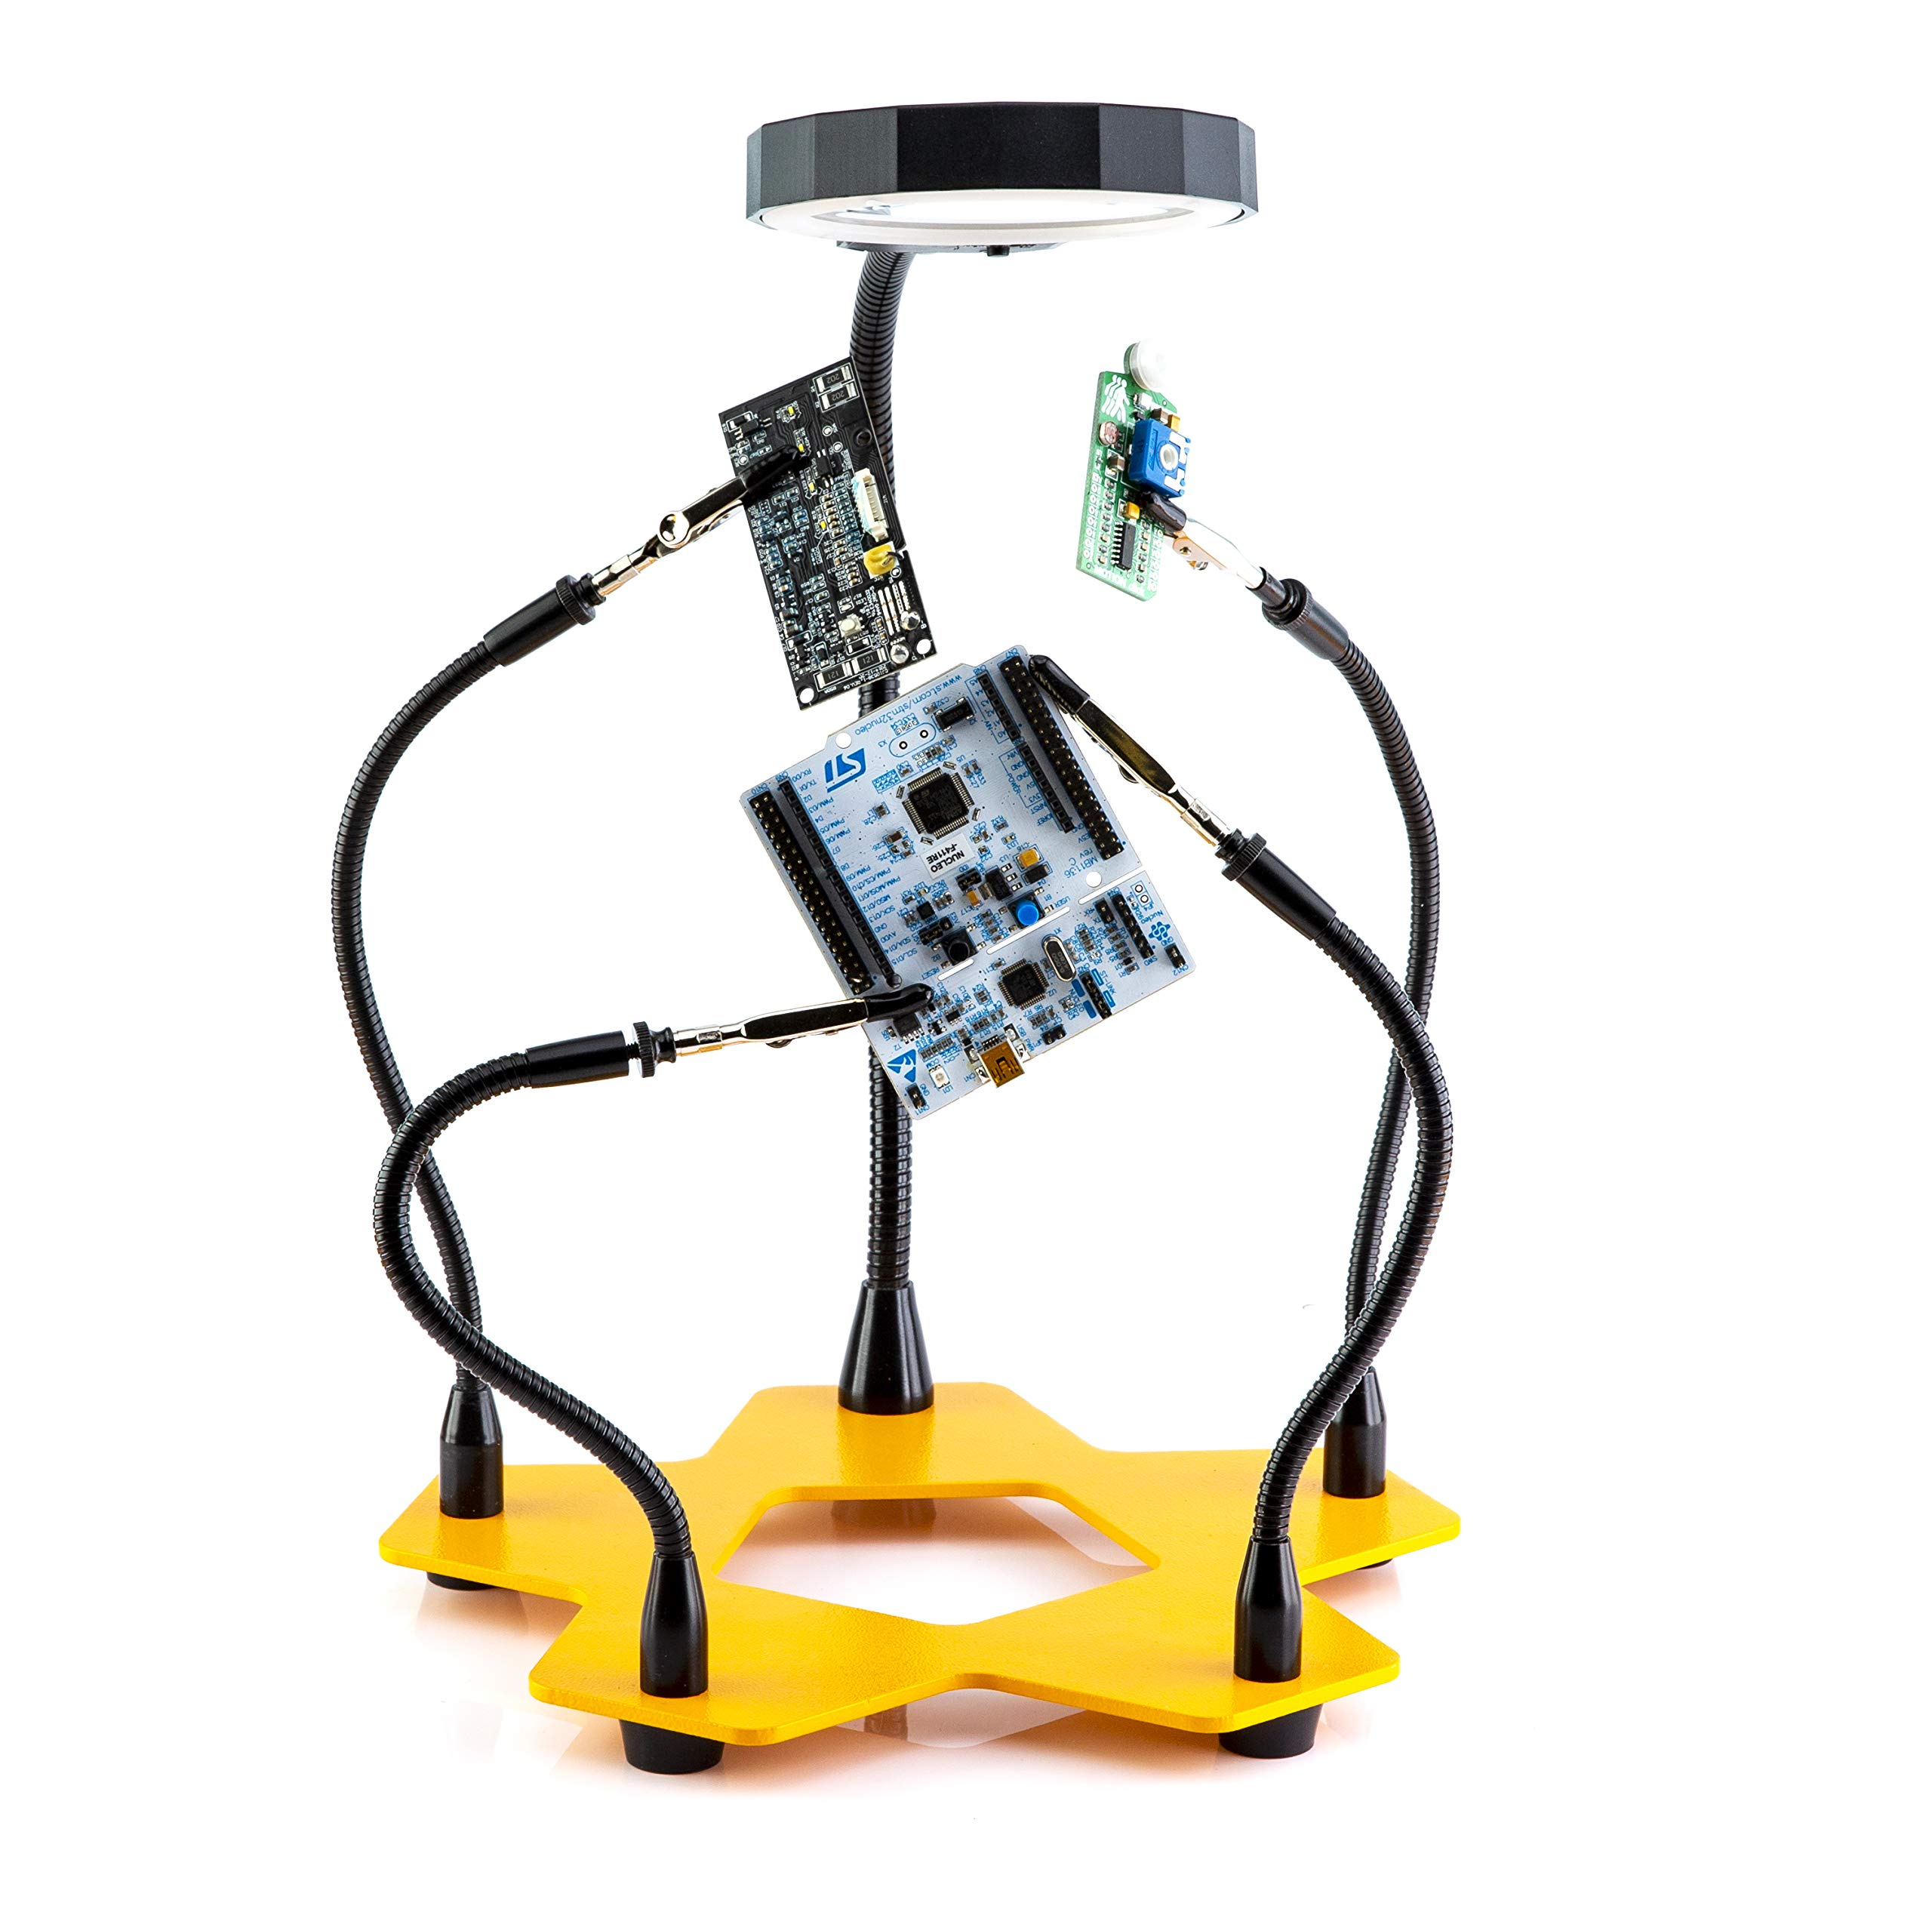 LED Lighted Magnifying Third Hand Soldering PCB Holder Tool Five Arms Helping Hands Crafts Jewelry Hobby Workshop Helping Station Non-slip weighted base, LED Lamp by Fstop Labs